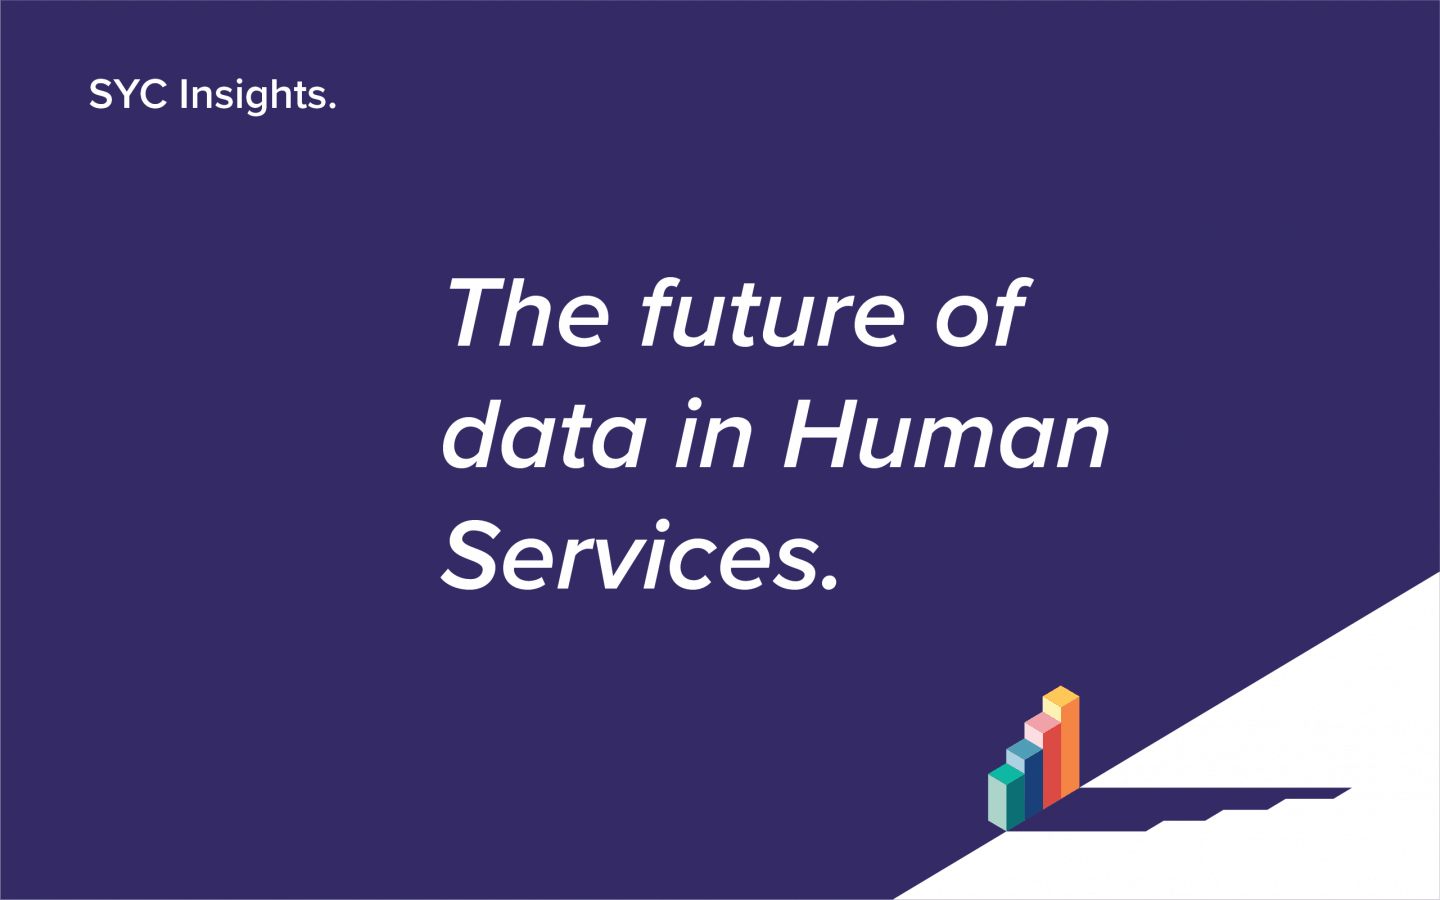 The future of data in Human Services - SYC Insights